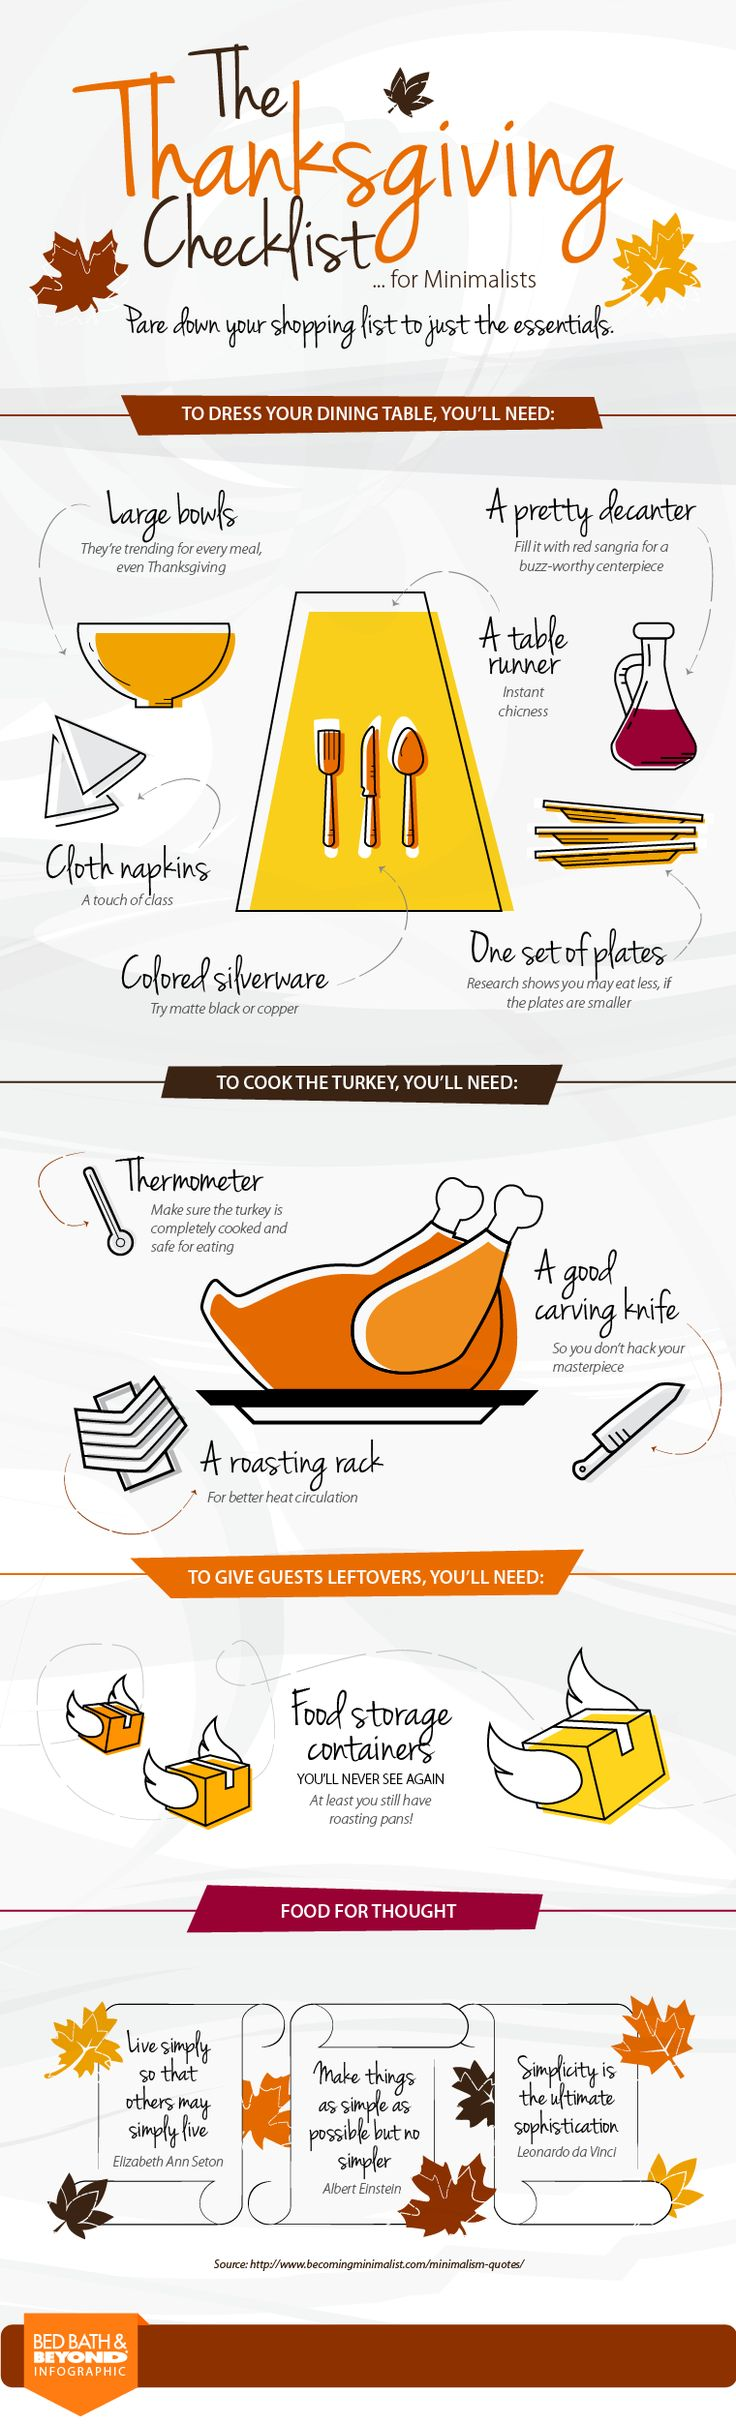 The Thanksgiving Checklist for Minimalists: Pare down your Thanksgiving shopping list to just the essentials.